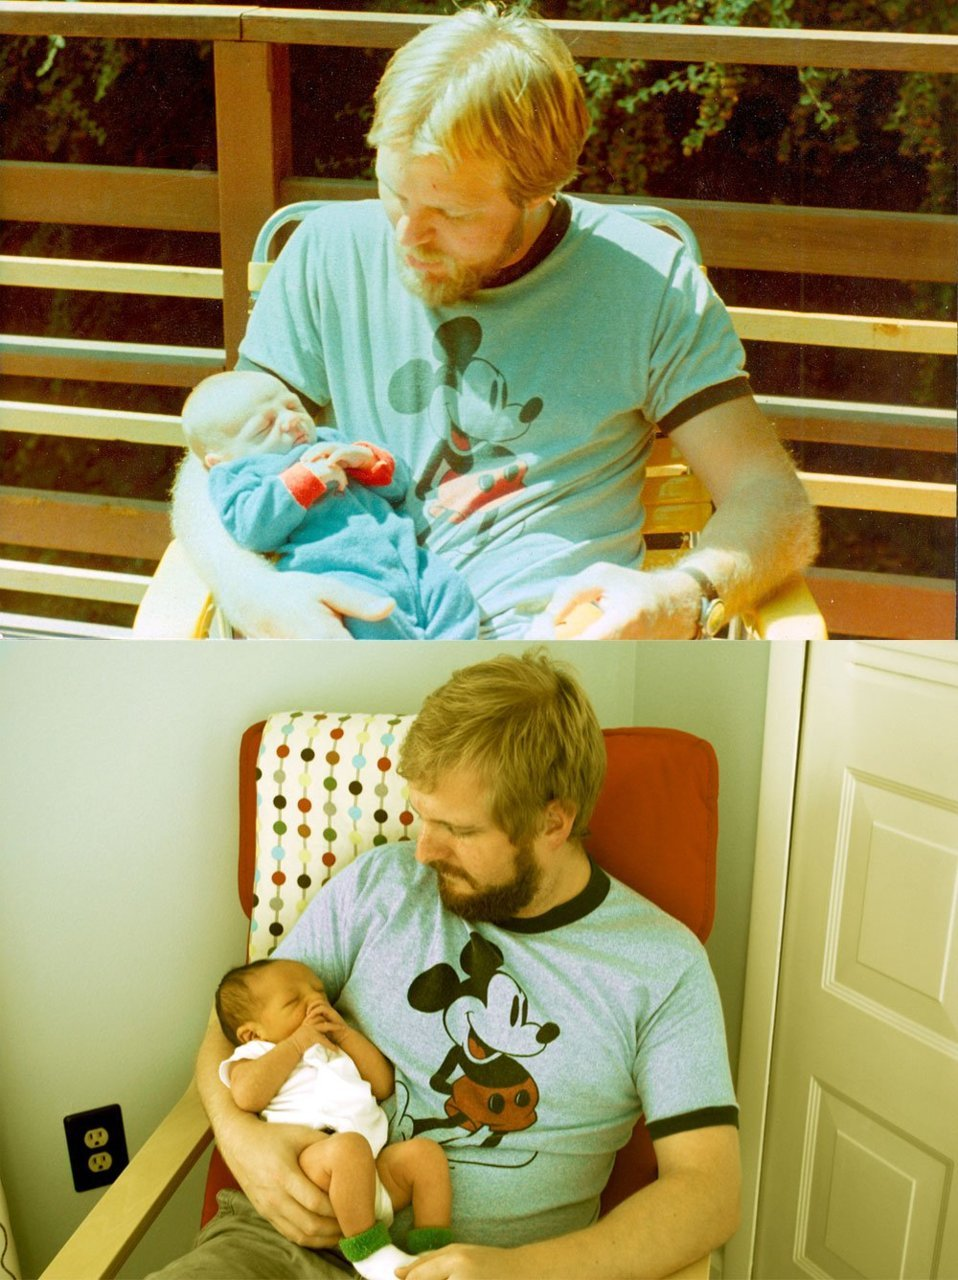 transmann:   My dad at 29, me at 2 weeks. Me at 29, my boy at 2 weeks.